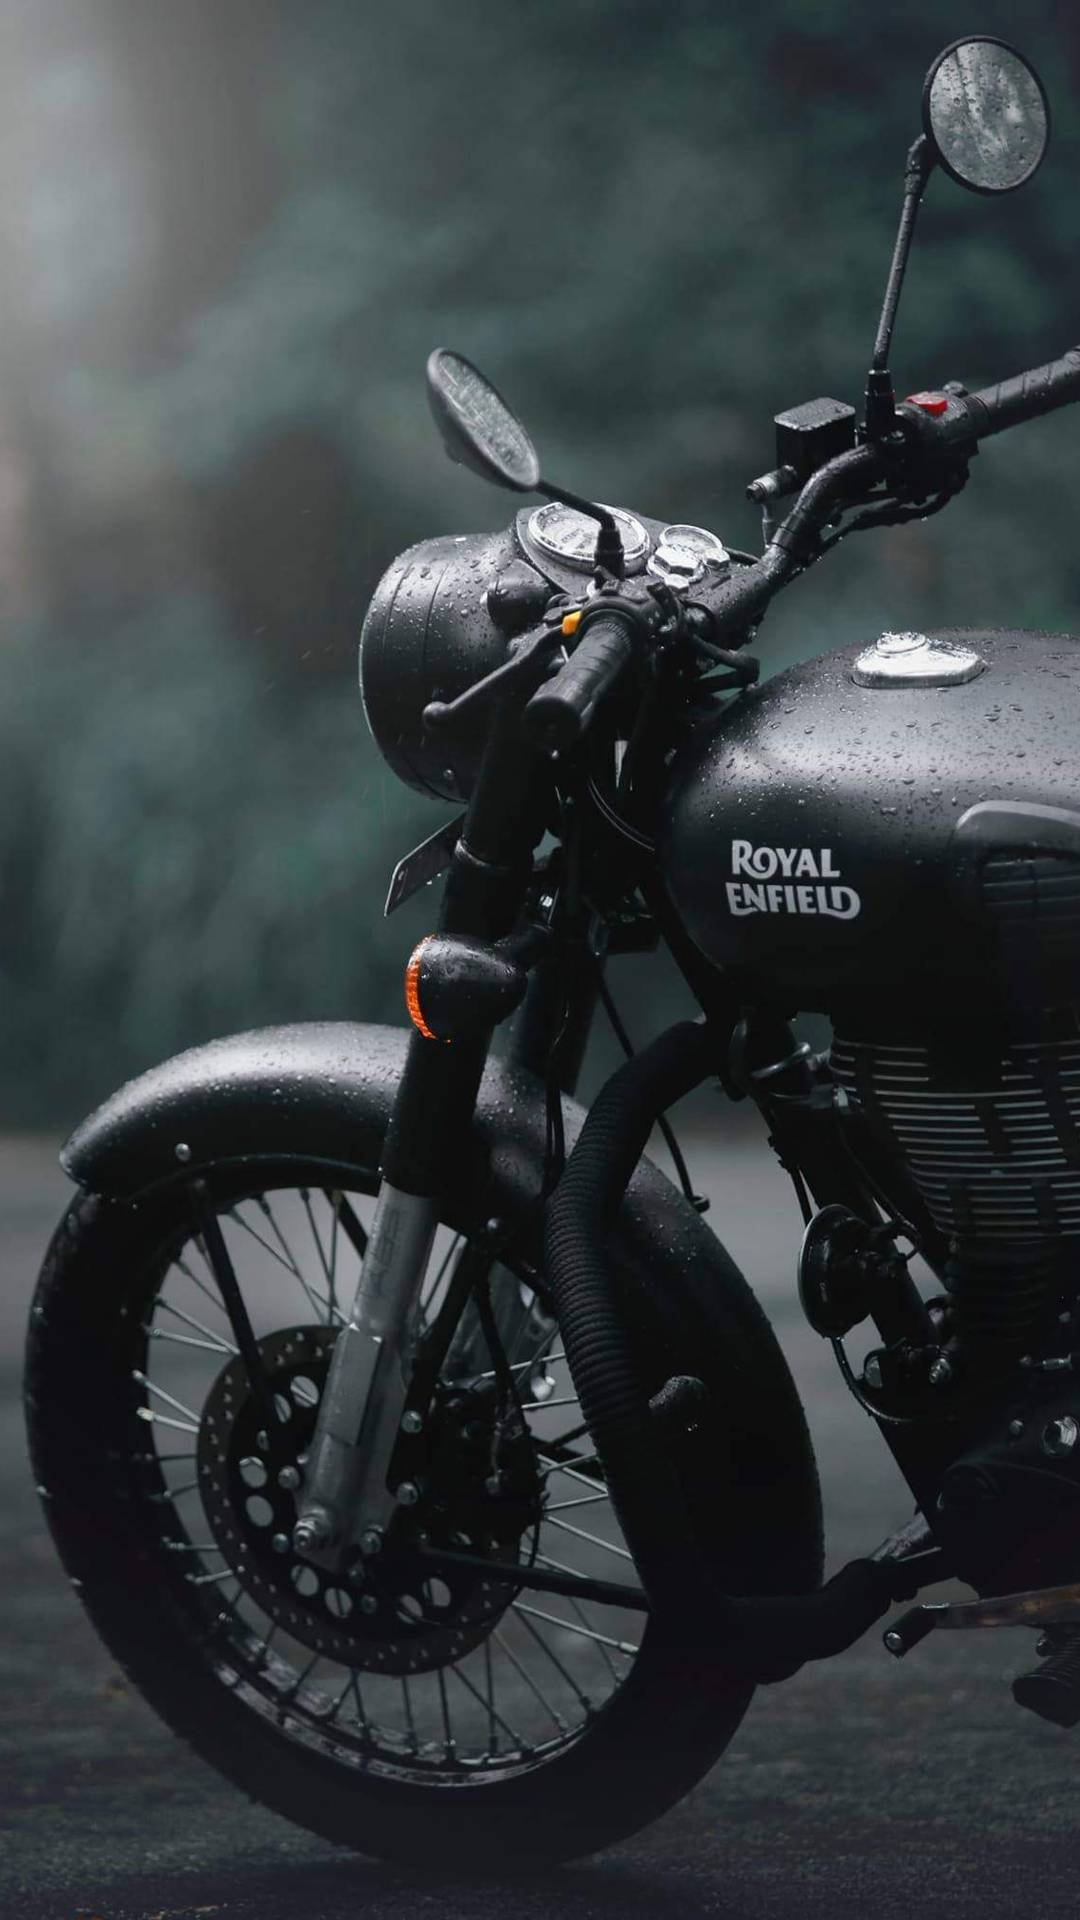 Awesome Phone Wallpapers Quotes Royal Enfield Stealth Black Iphone Wallpaper Iphone